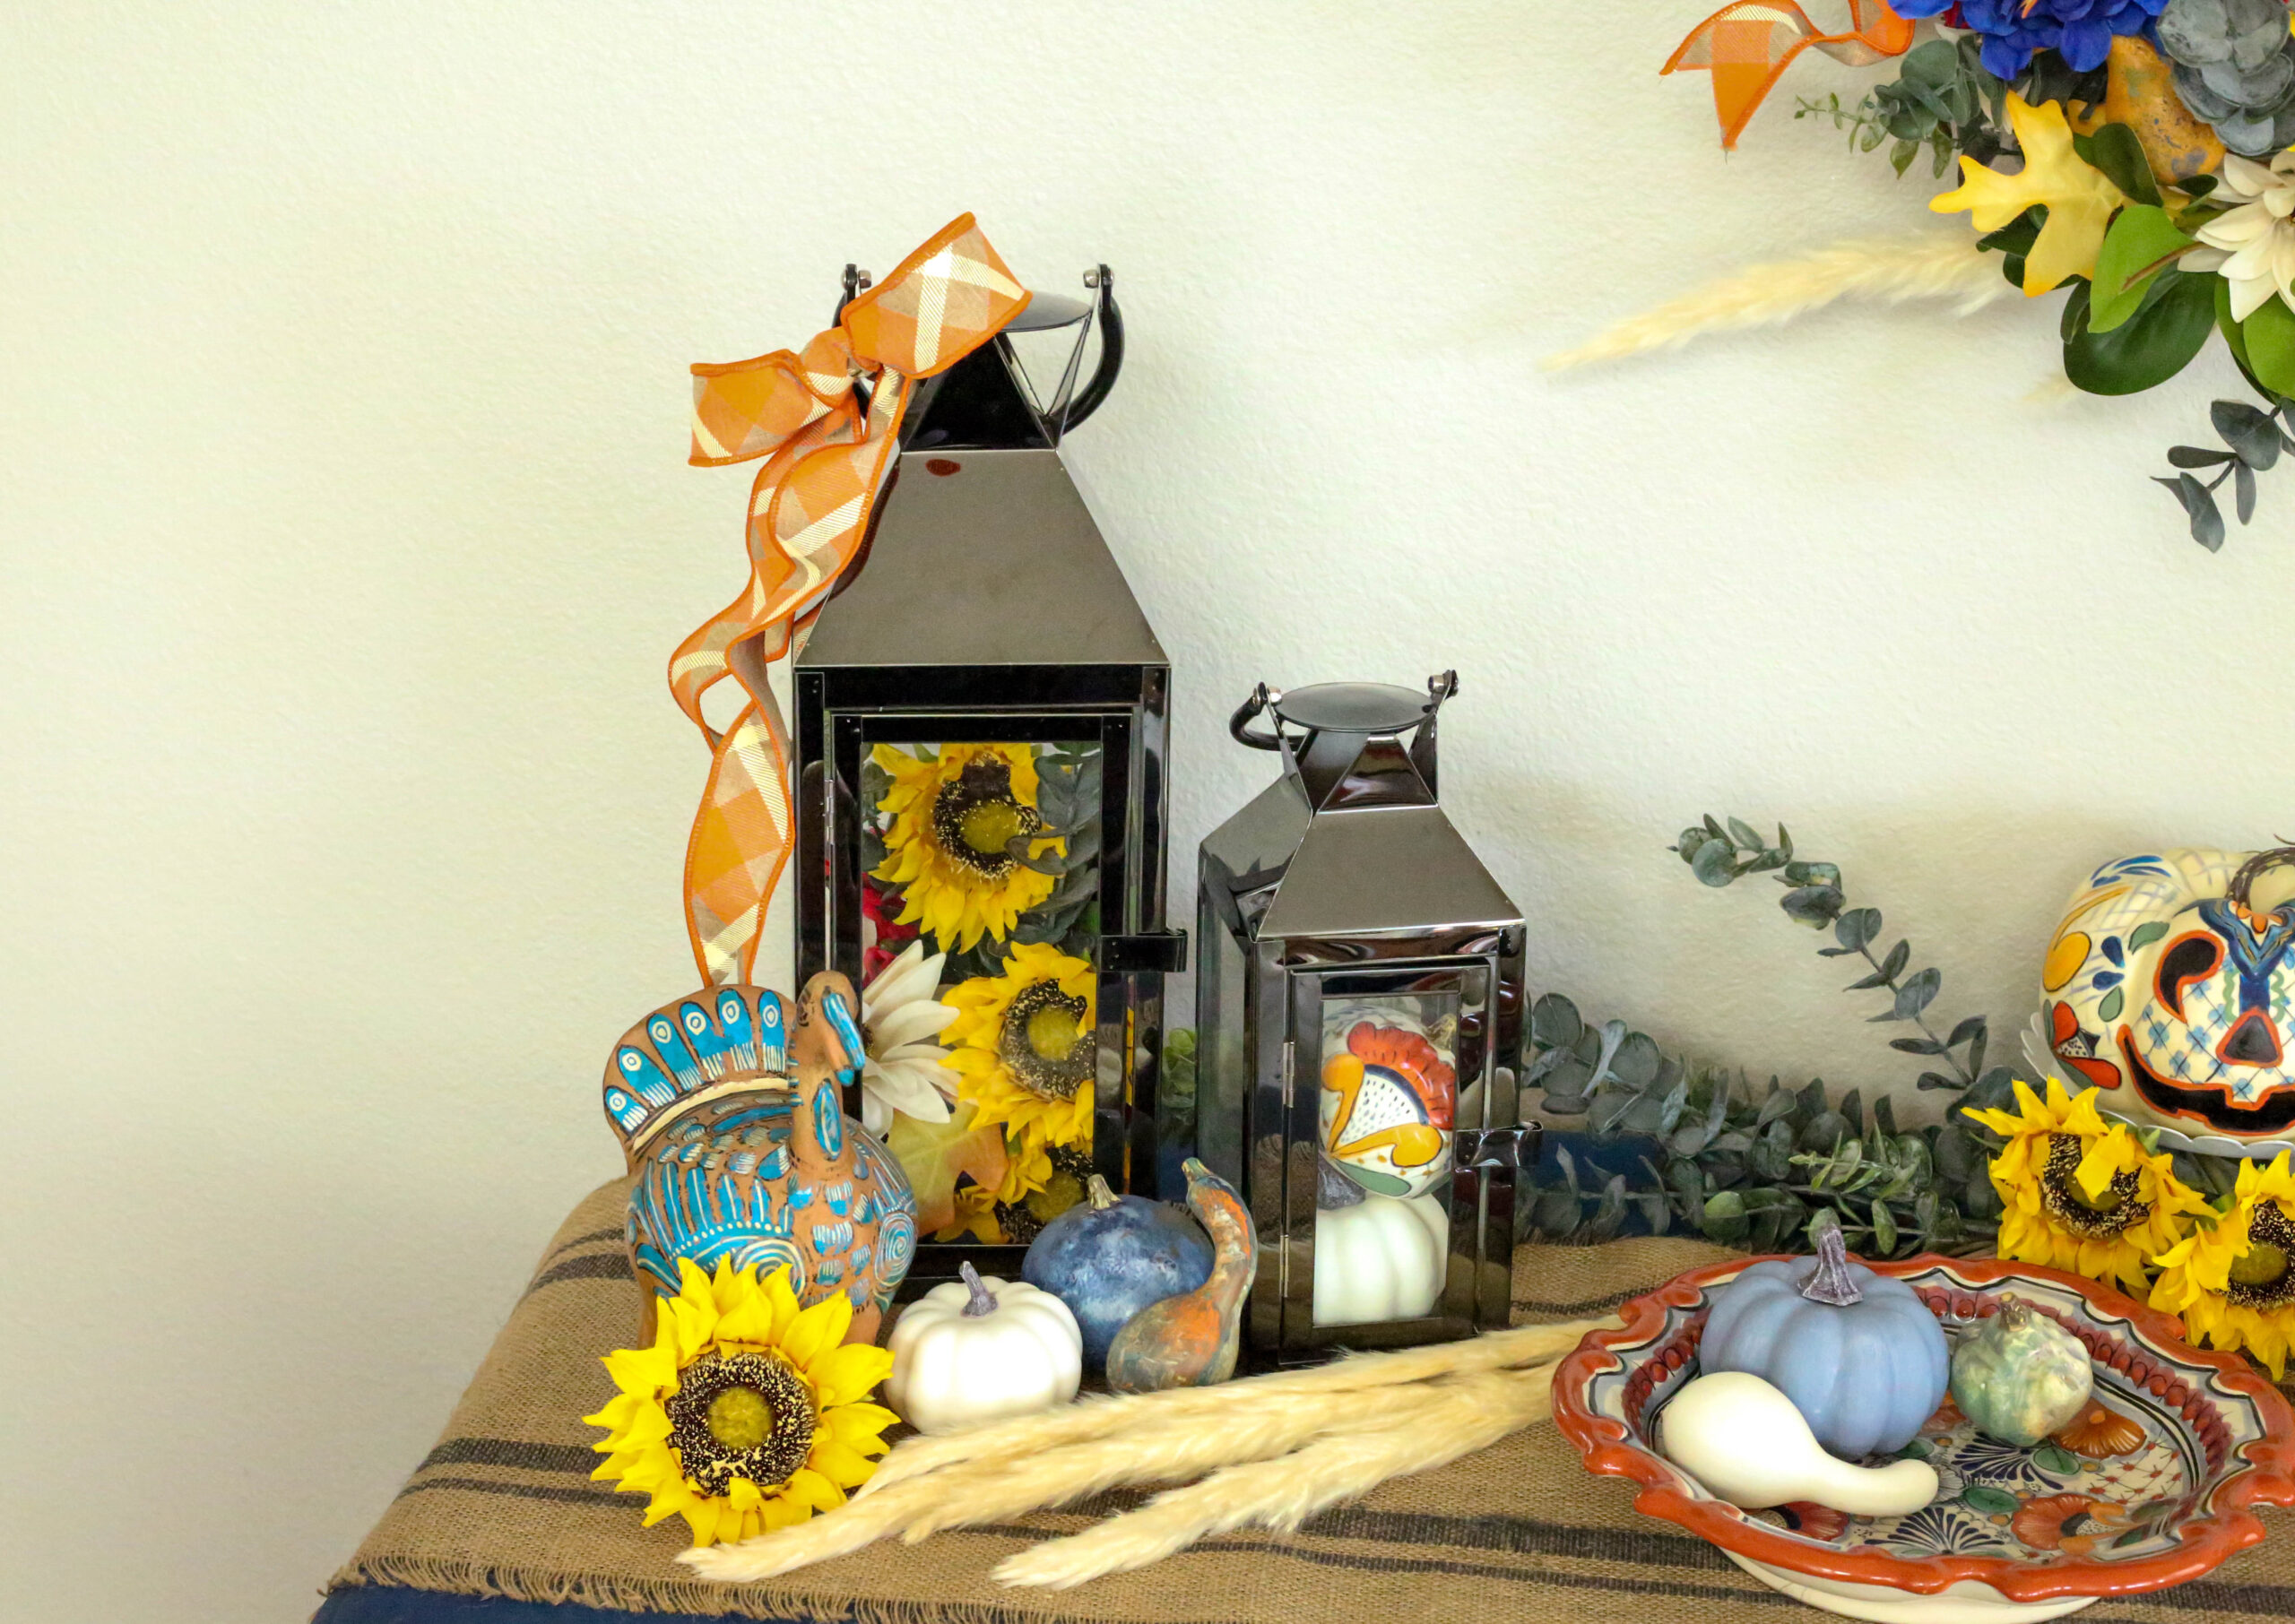 lanterns of flowers and gourds